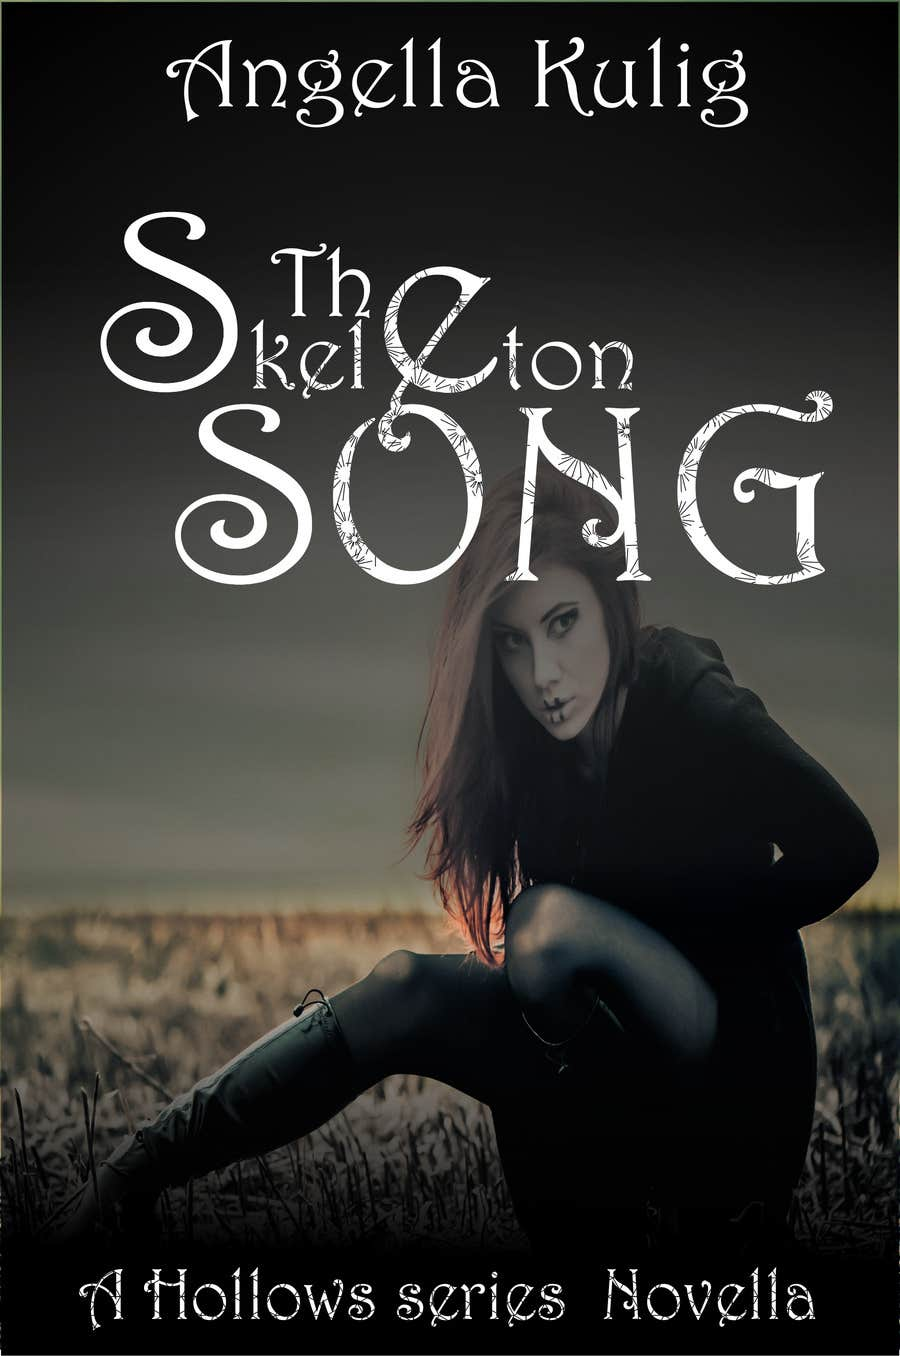 Konkurrenceindlæg #                                        165                                      for                                         The Skeleton Song New Cover